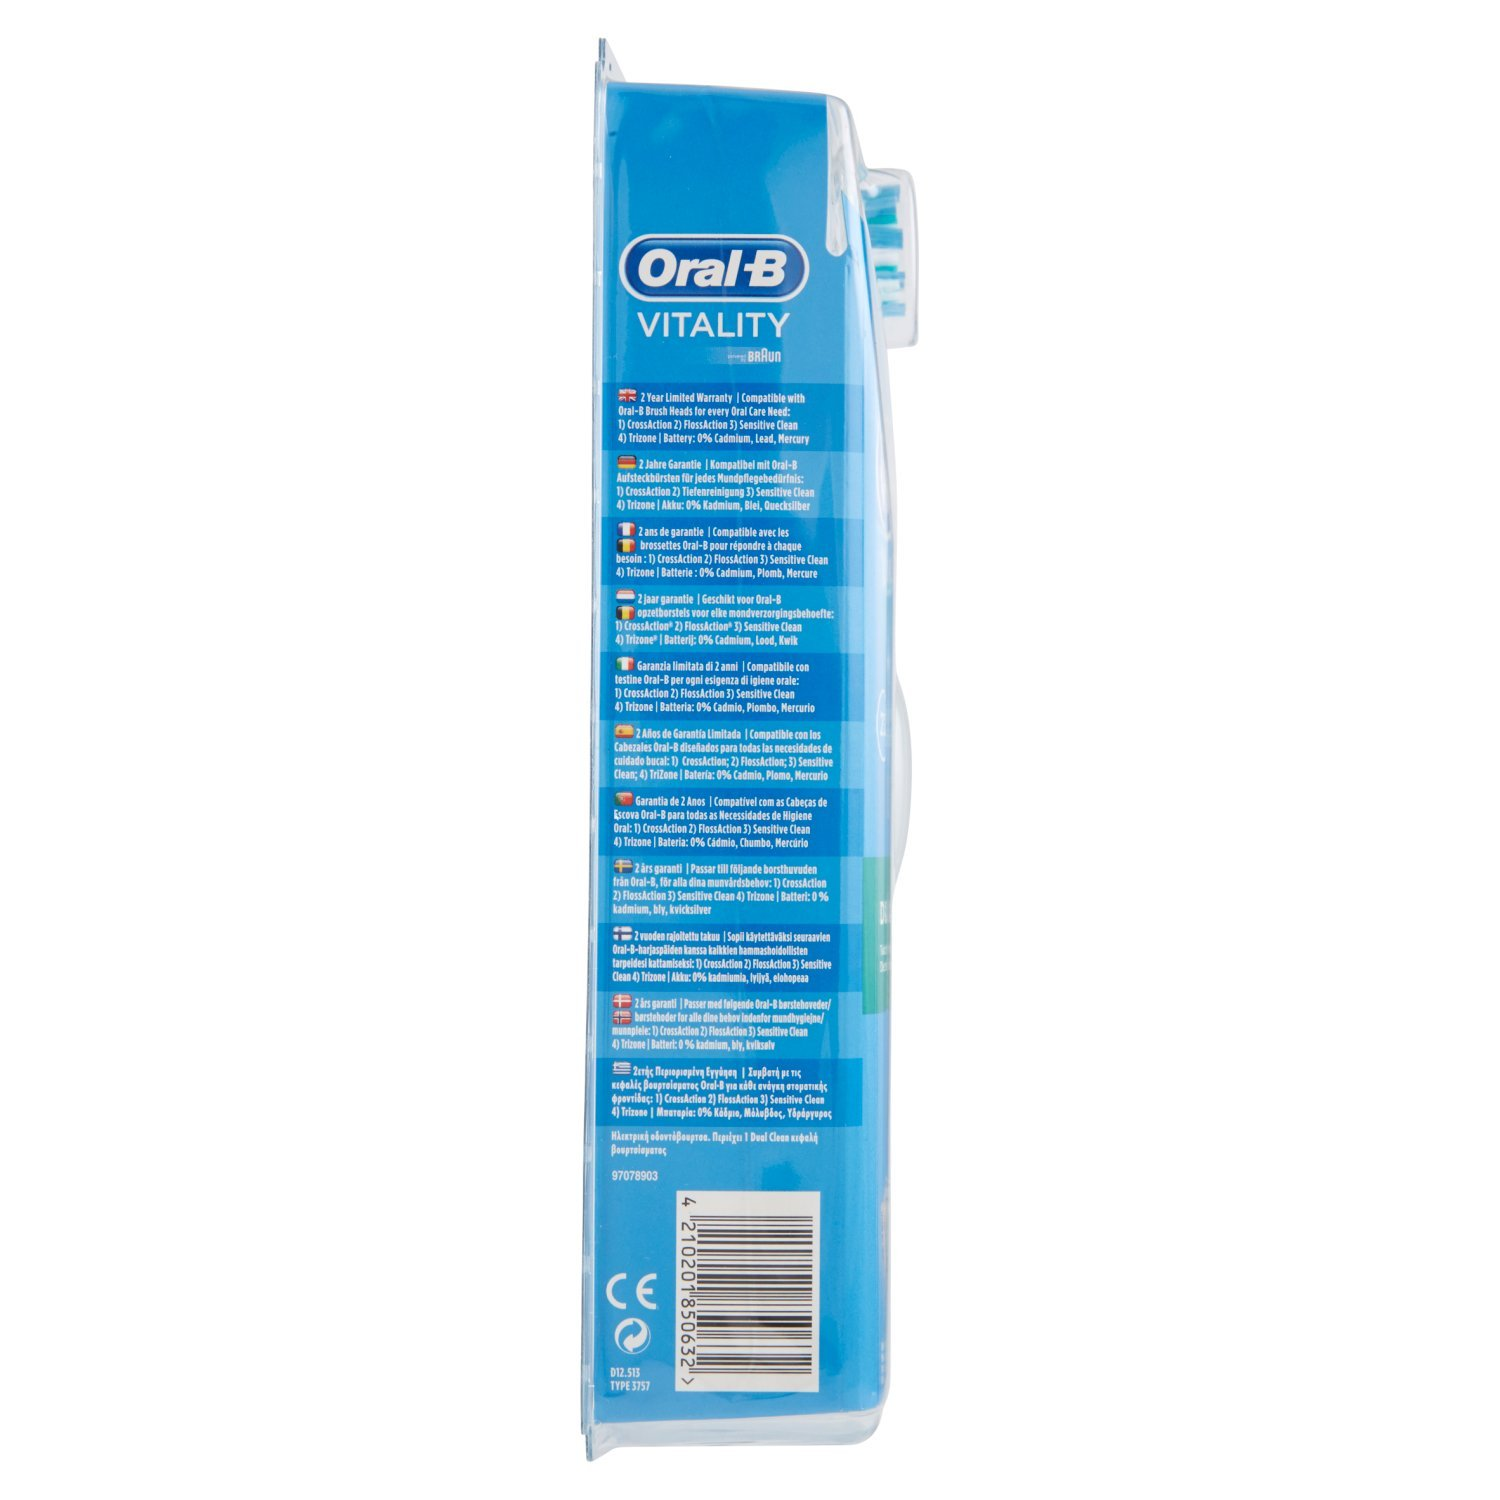 Amazon.com: Oral-B Vitality 2D Action Technology Electric Rechargeable Toothbrush - Dual Clean: Beauty